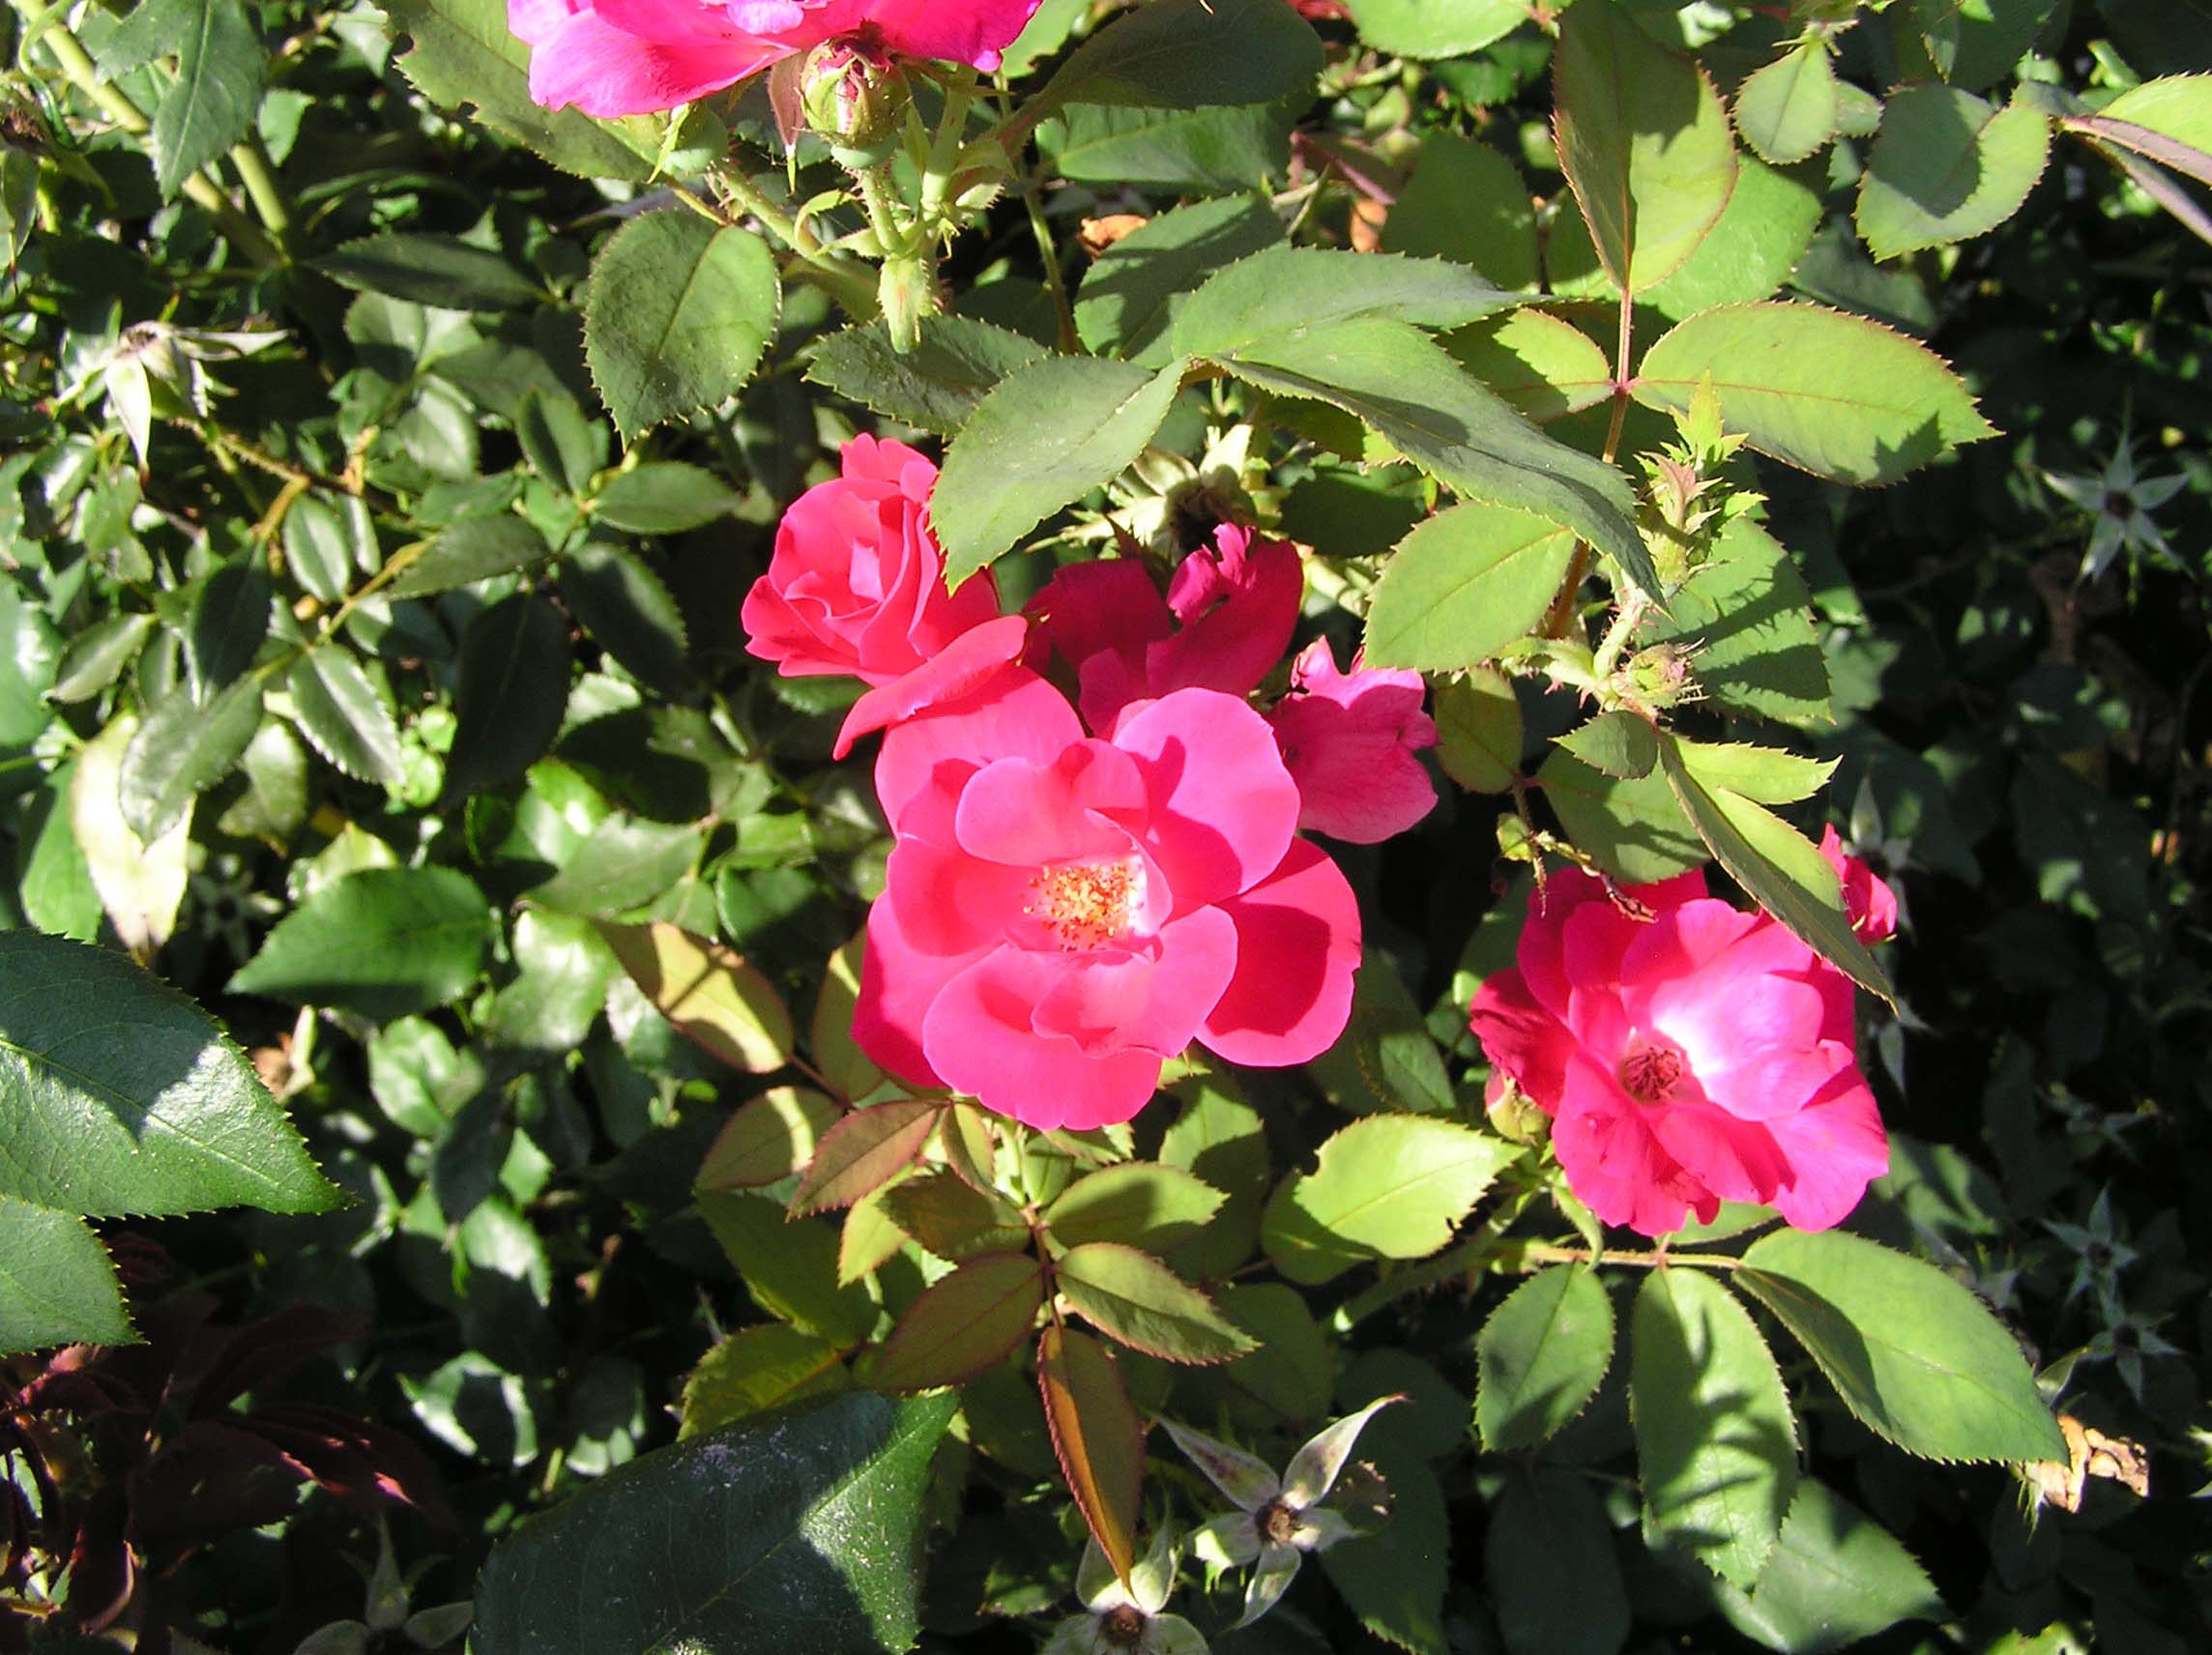 Knockout rose in bloomJPG